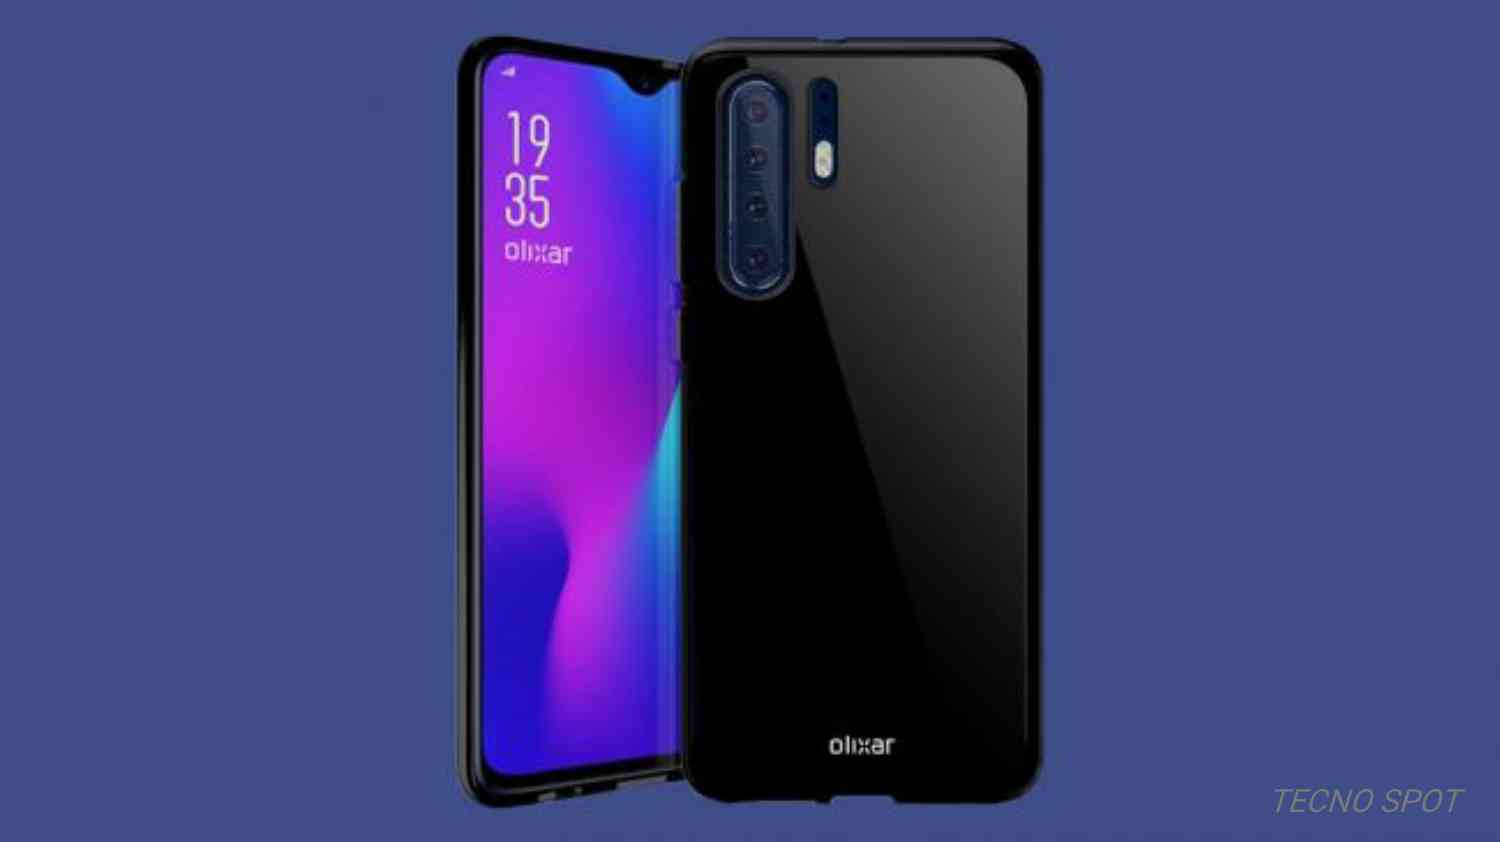 Huawei P30 Pro set to one-up Samsung Galaxy S10 with quad camera